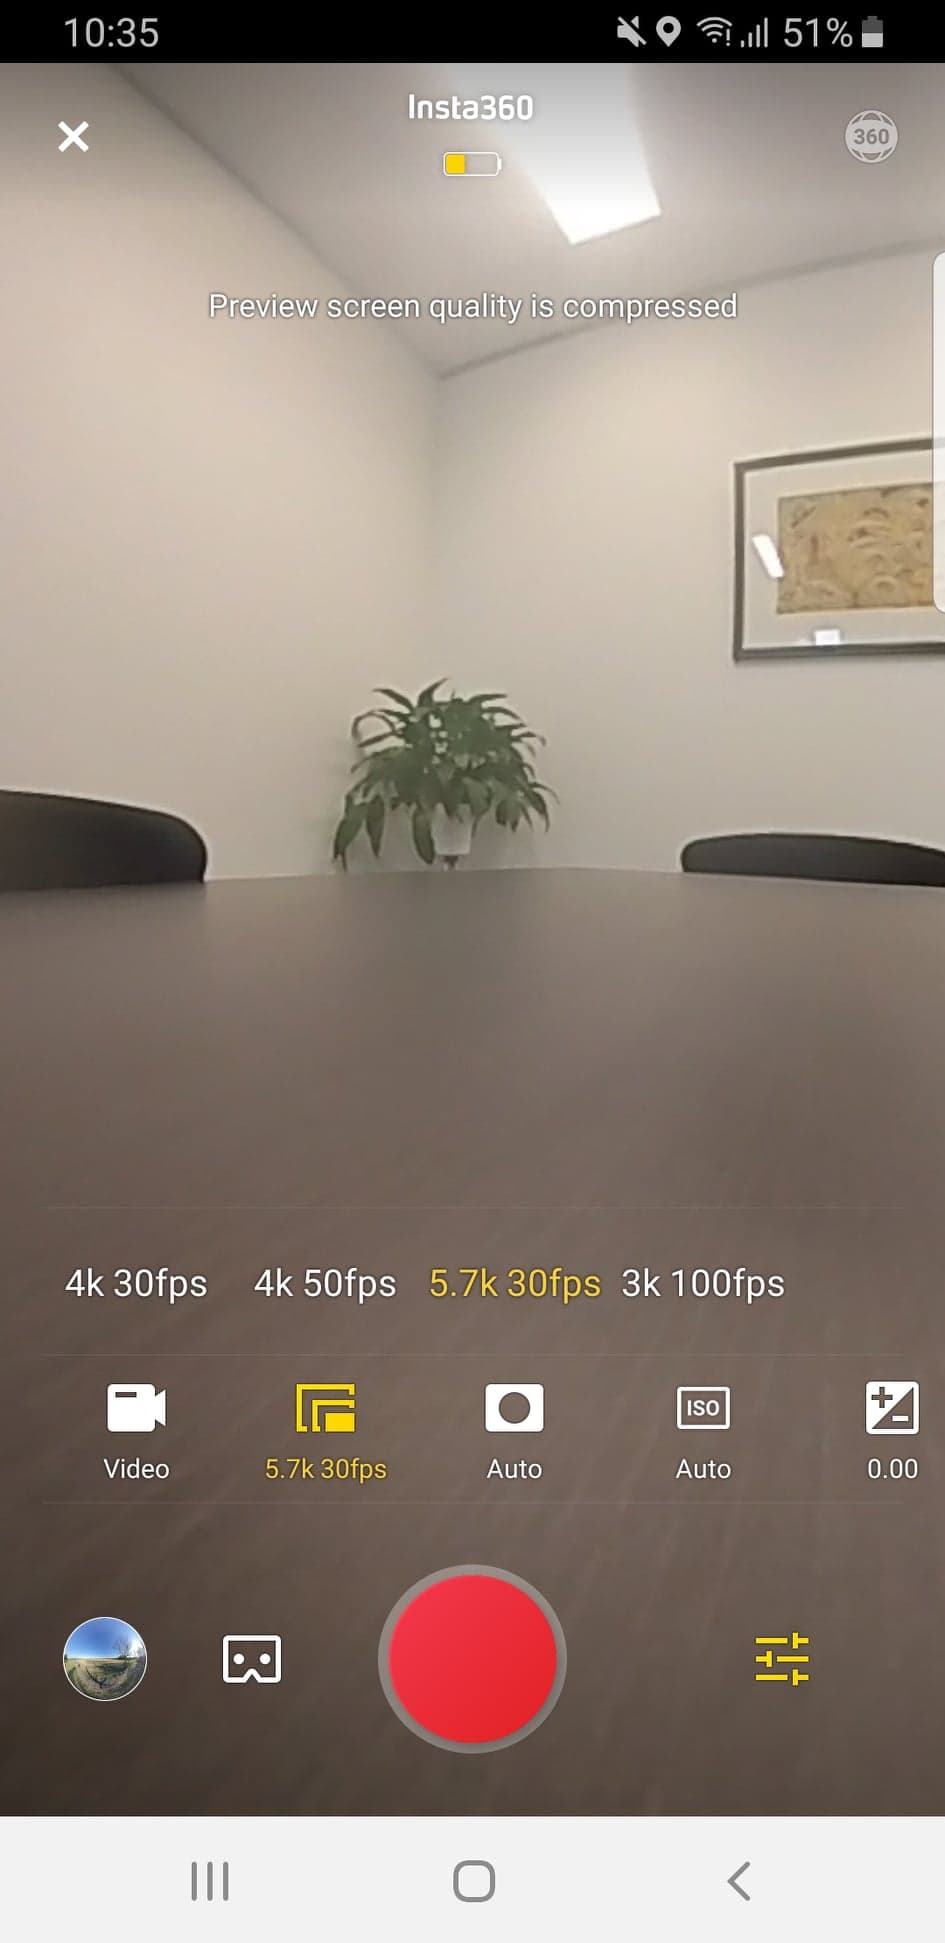 Insta360 App Preview Video